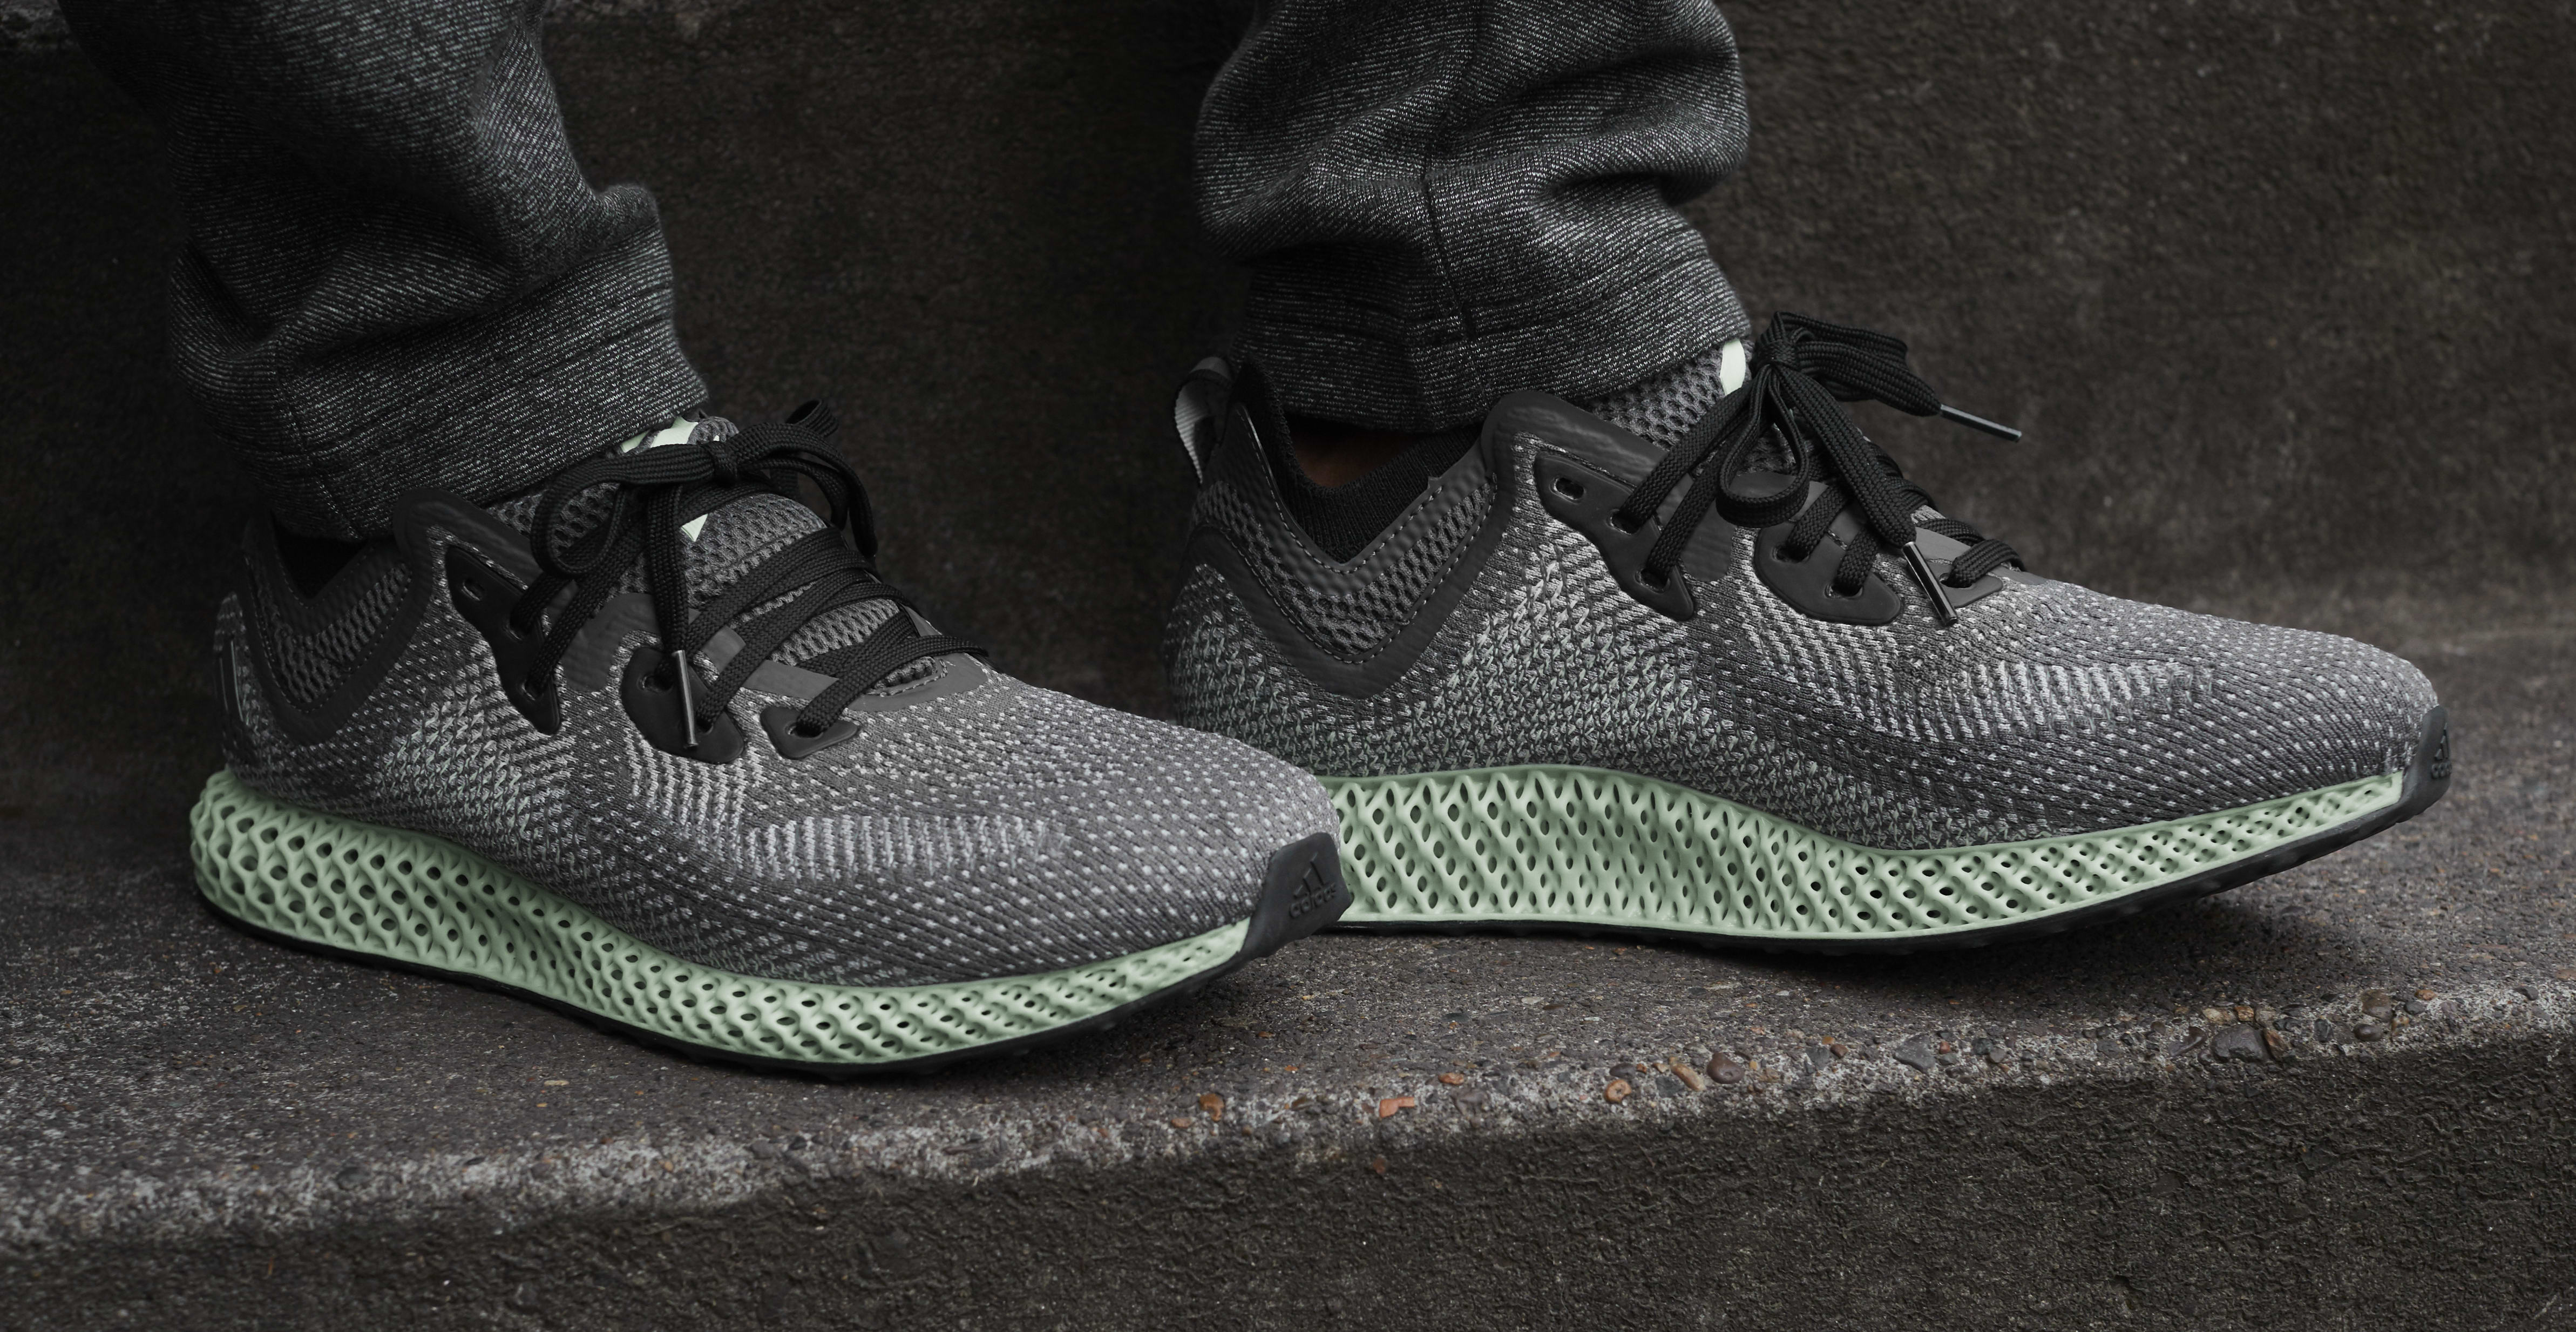 Footwear of the Future Lands in LA with the Release of AlphaEDGE 4D ... 30a0900c0